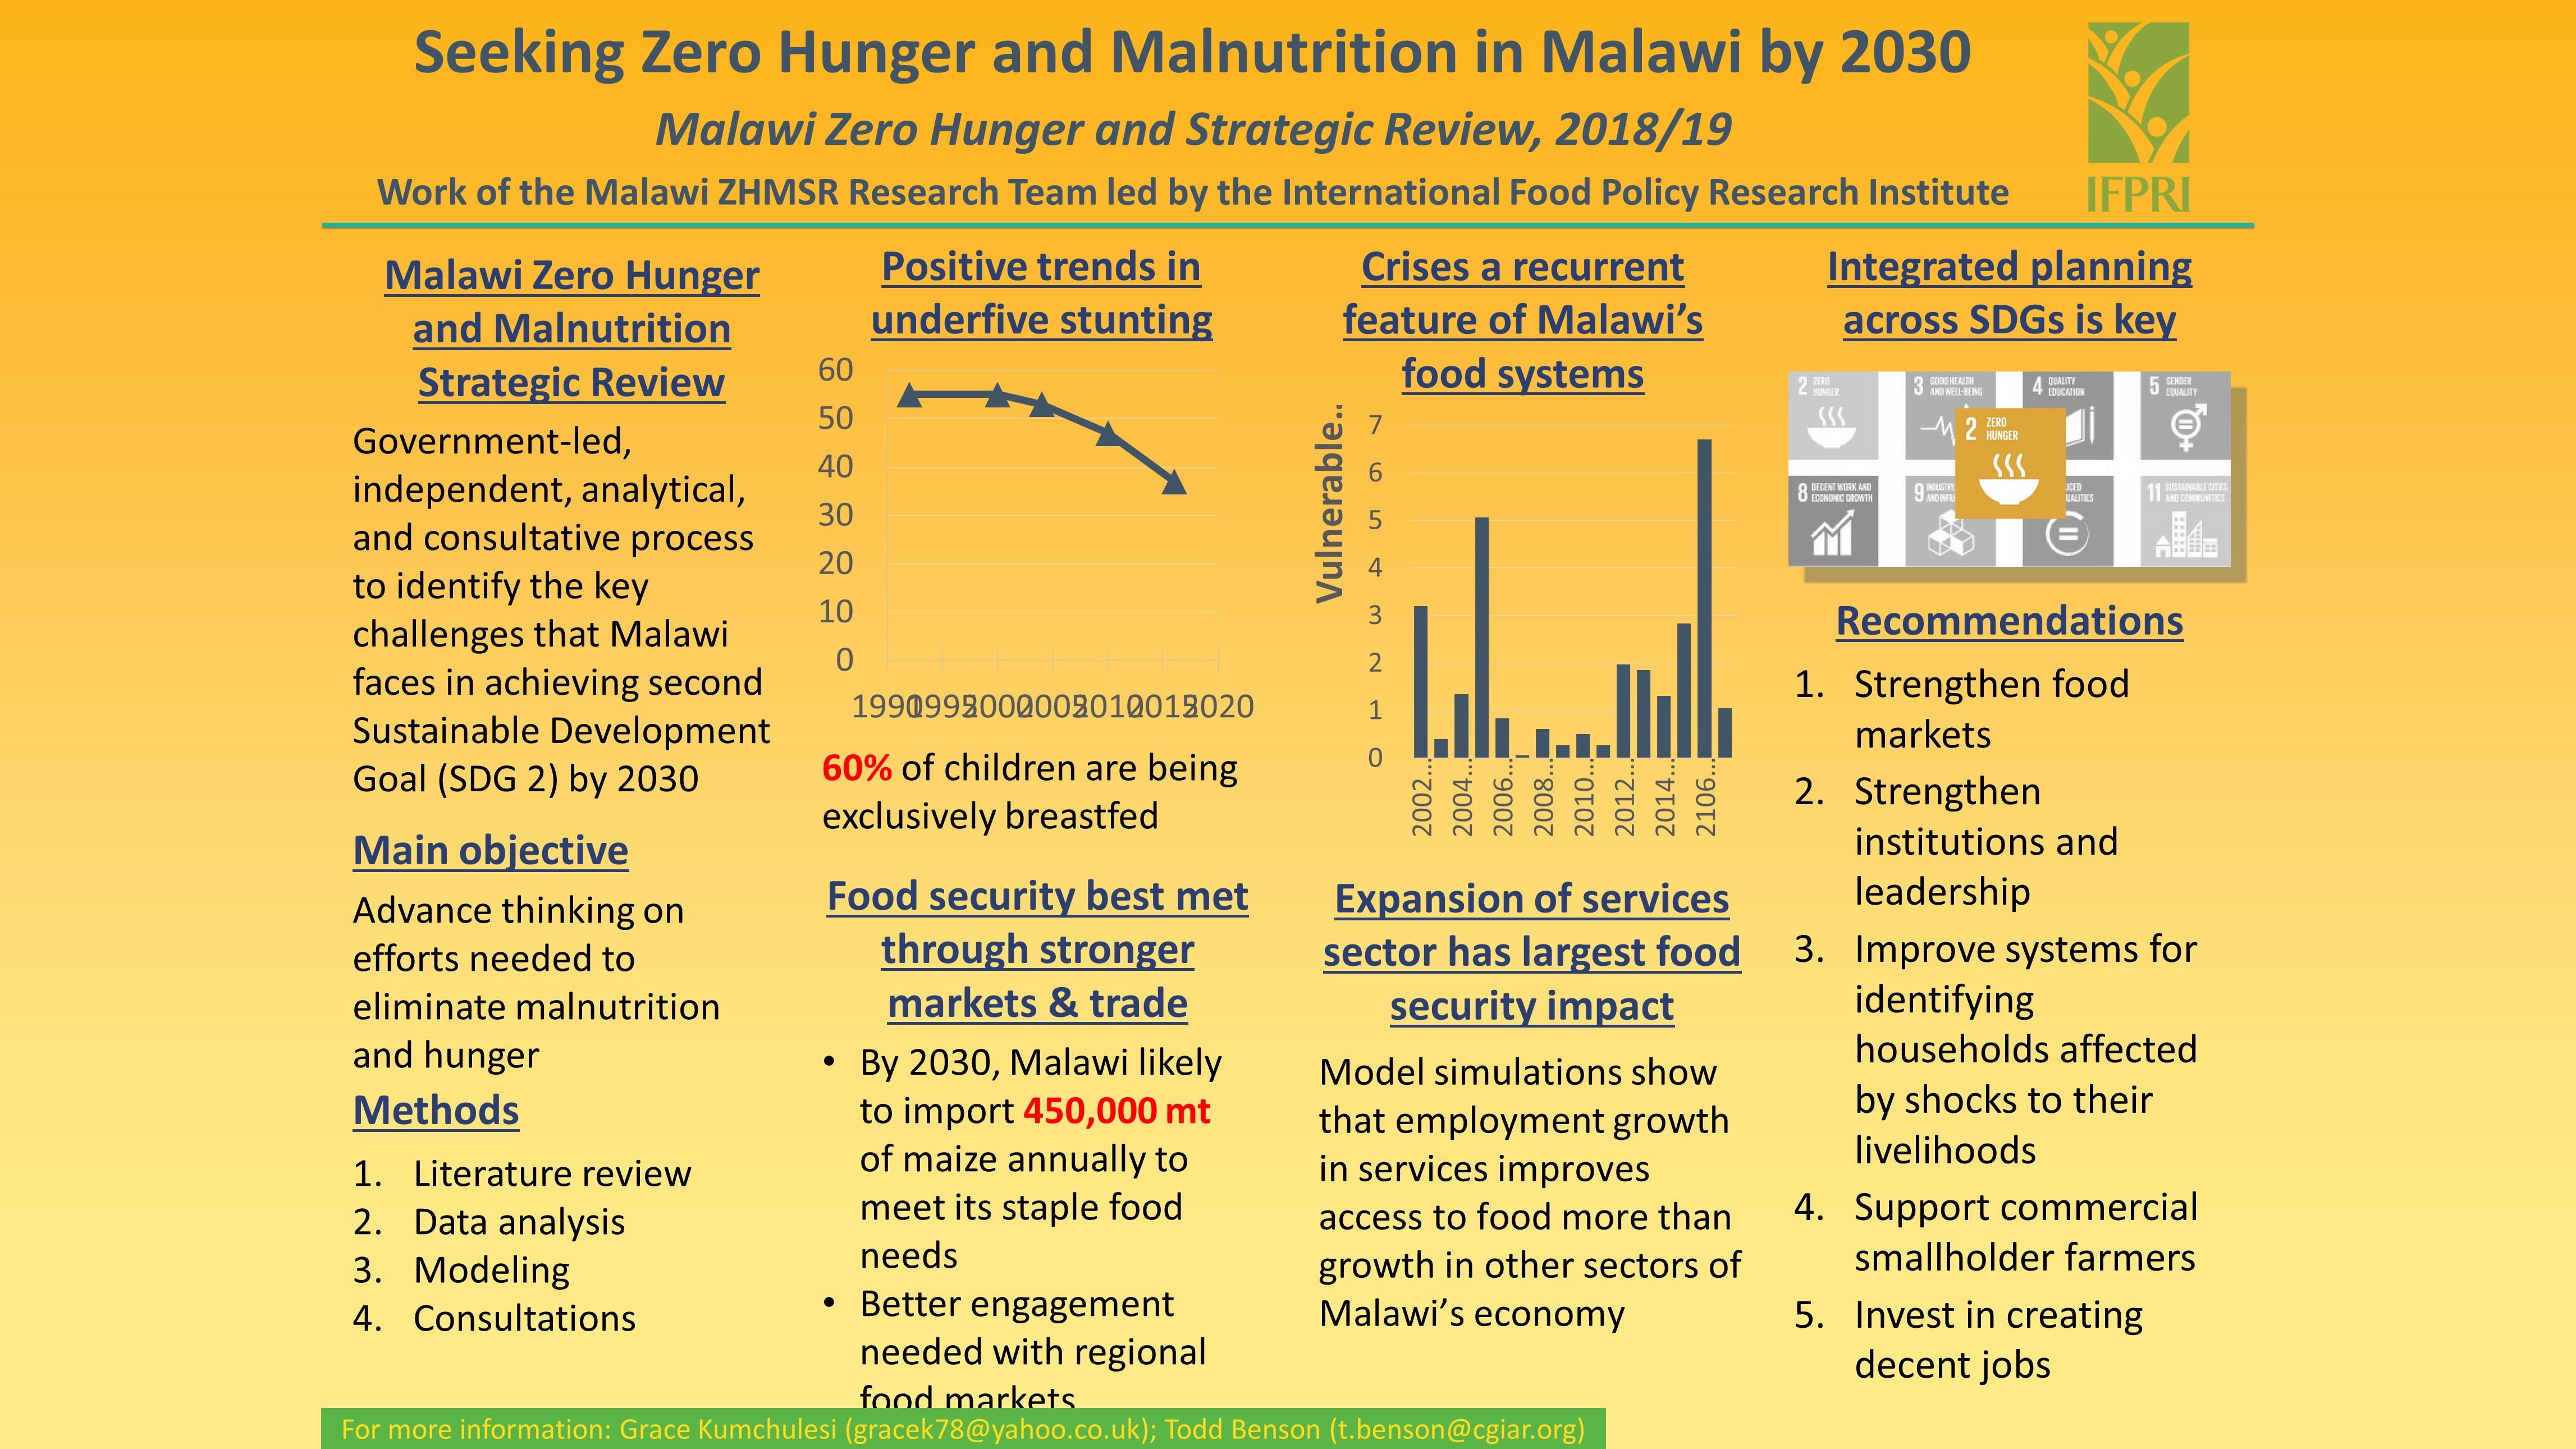 Seeking Zero Hunger and Malnutrition in Malawi by 2030